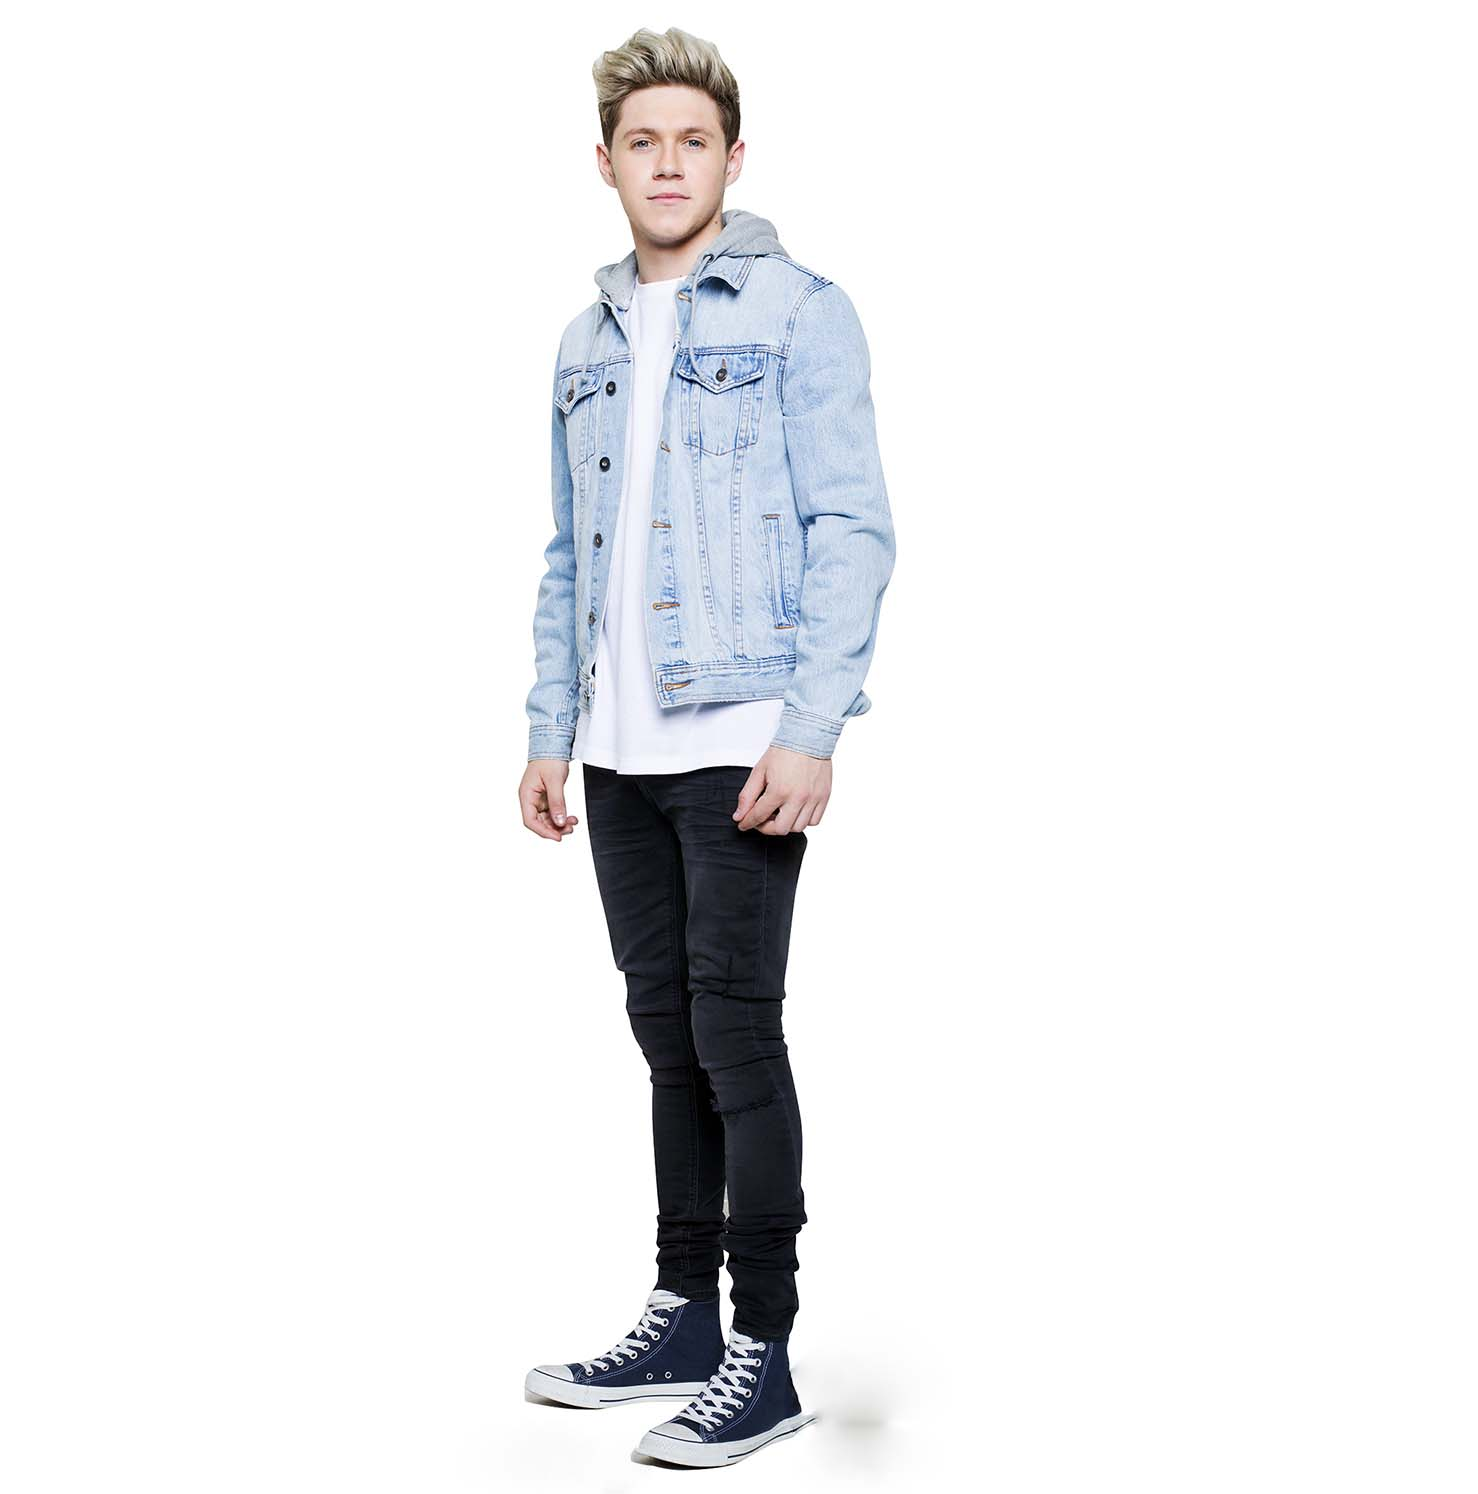 Niall Horan New Wallpapers Best Pictures HD 1080p